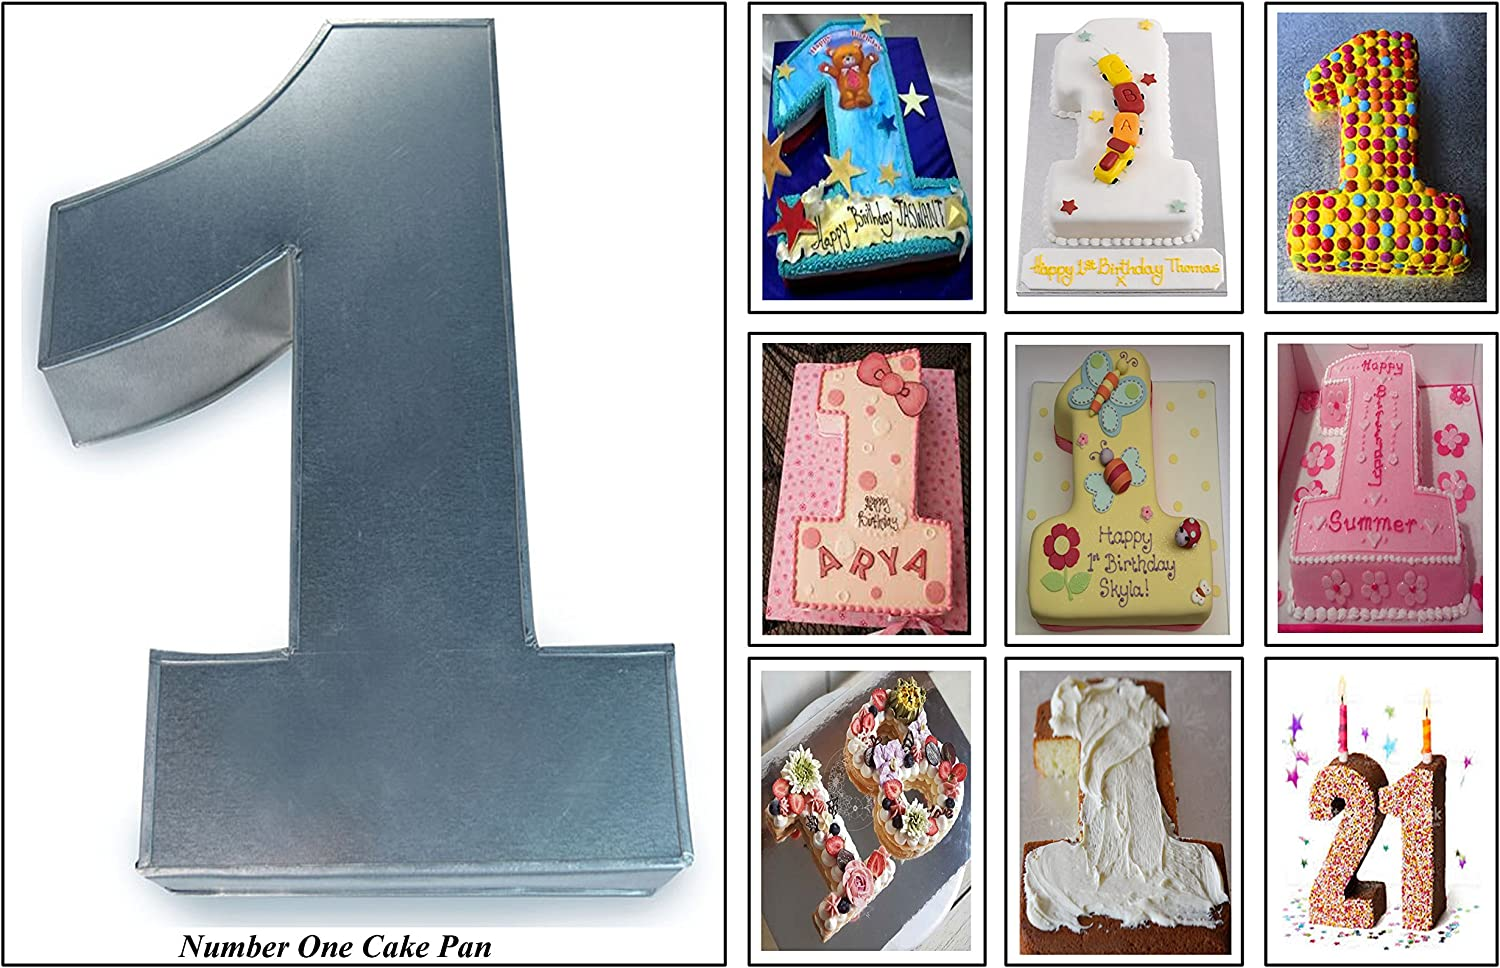 Phenomenal Euro Tins Numeric Cake Pan 25Cm Birthday Cake Tin Number One 1 Personalised Birthday Cards Paralily Jamesorg